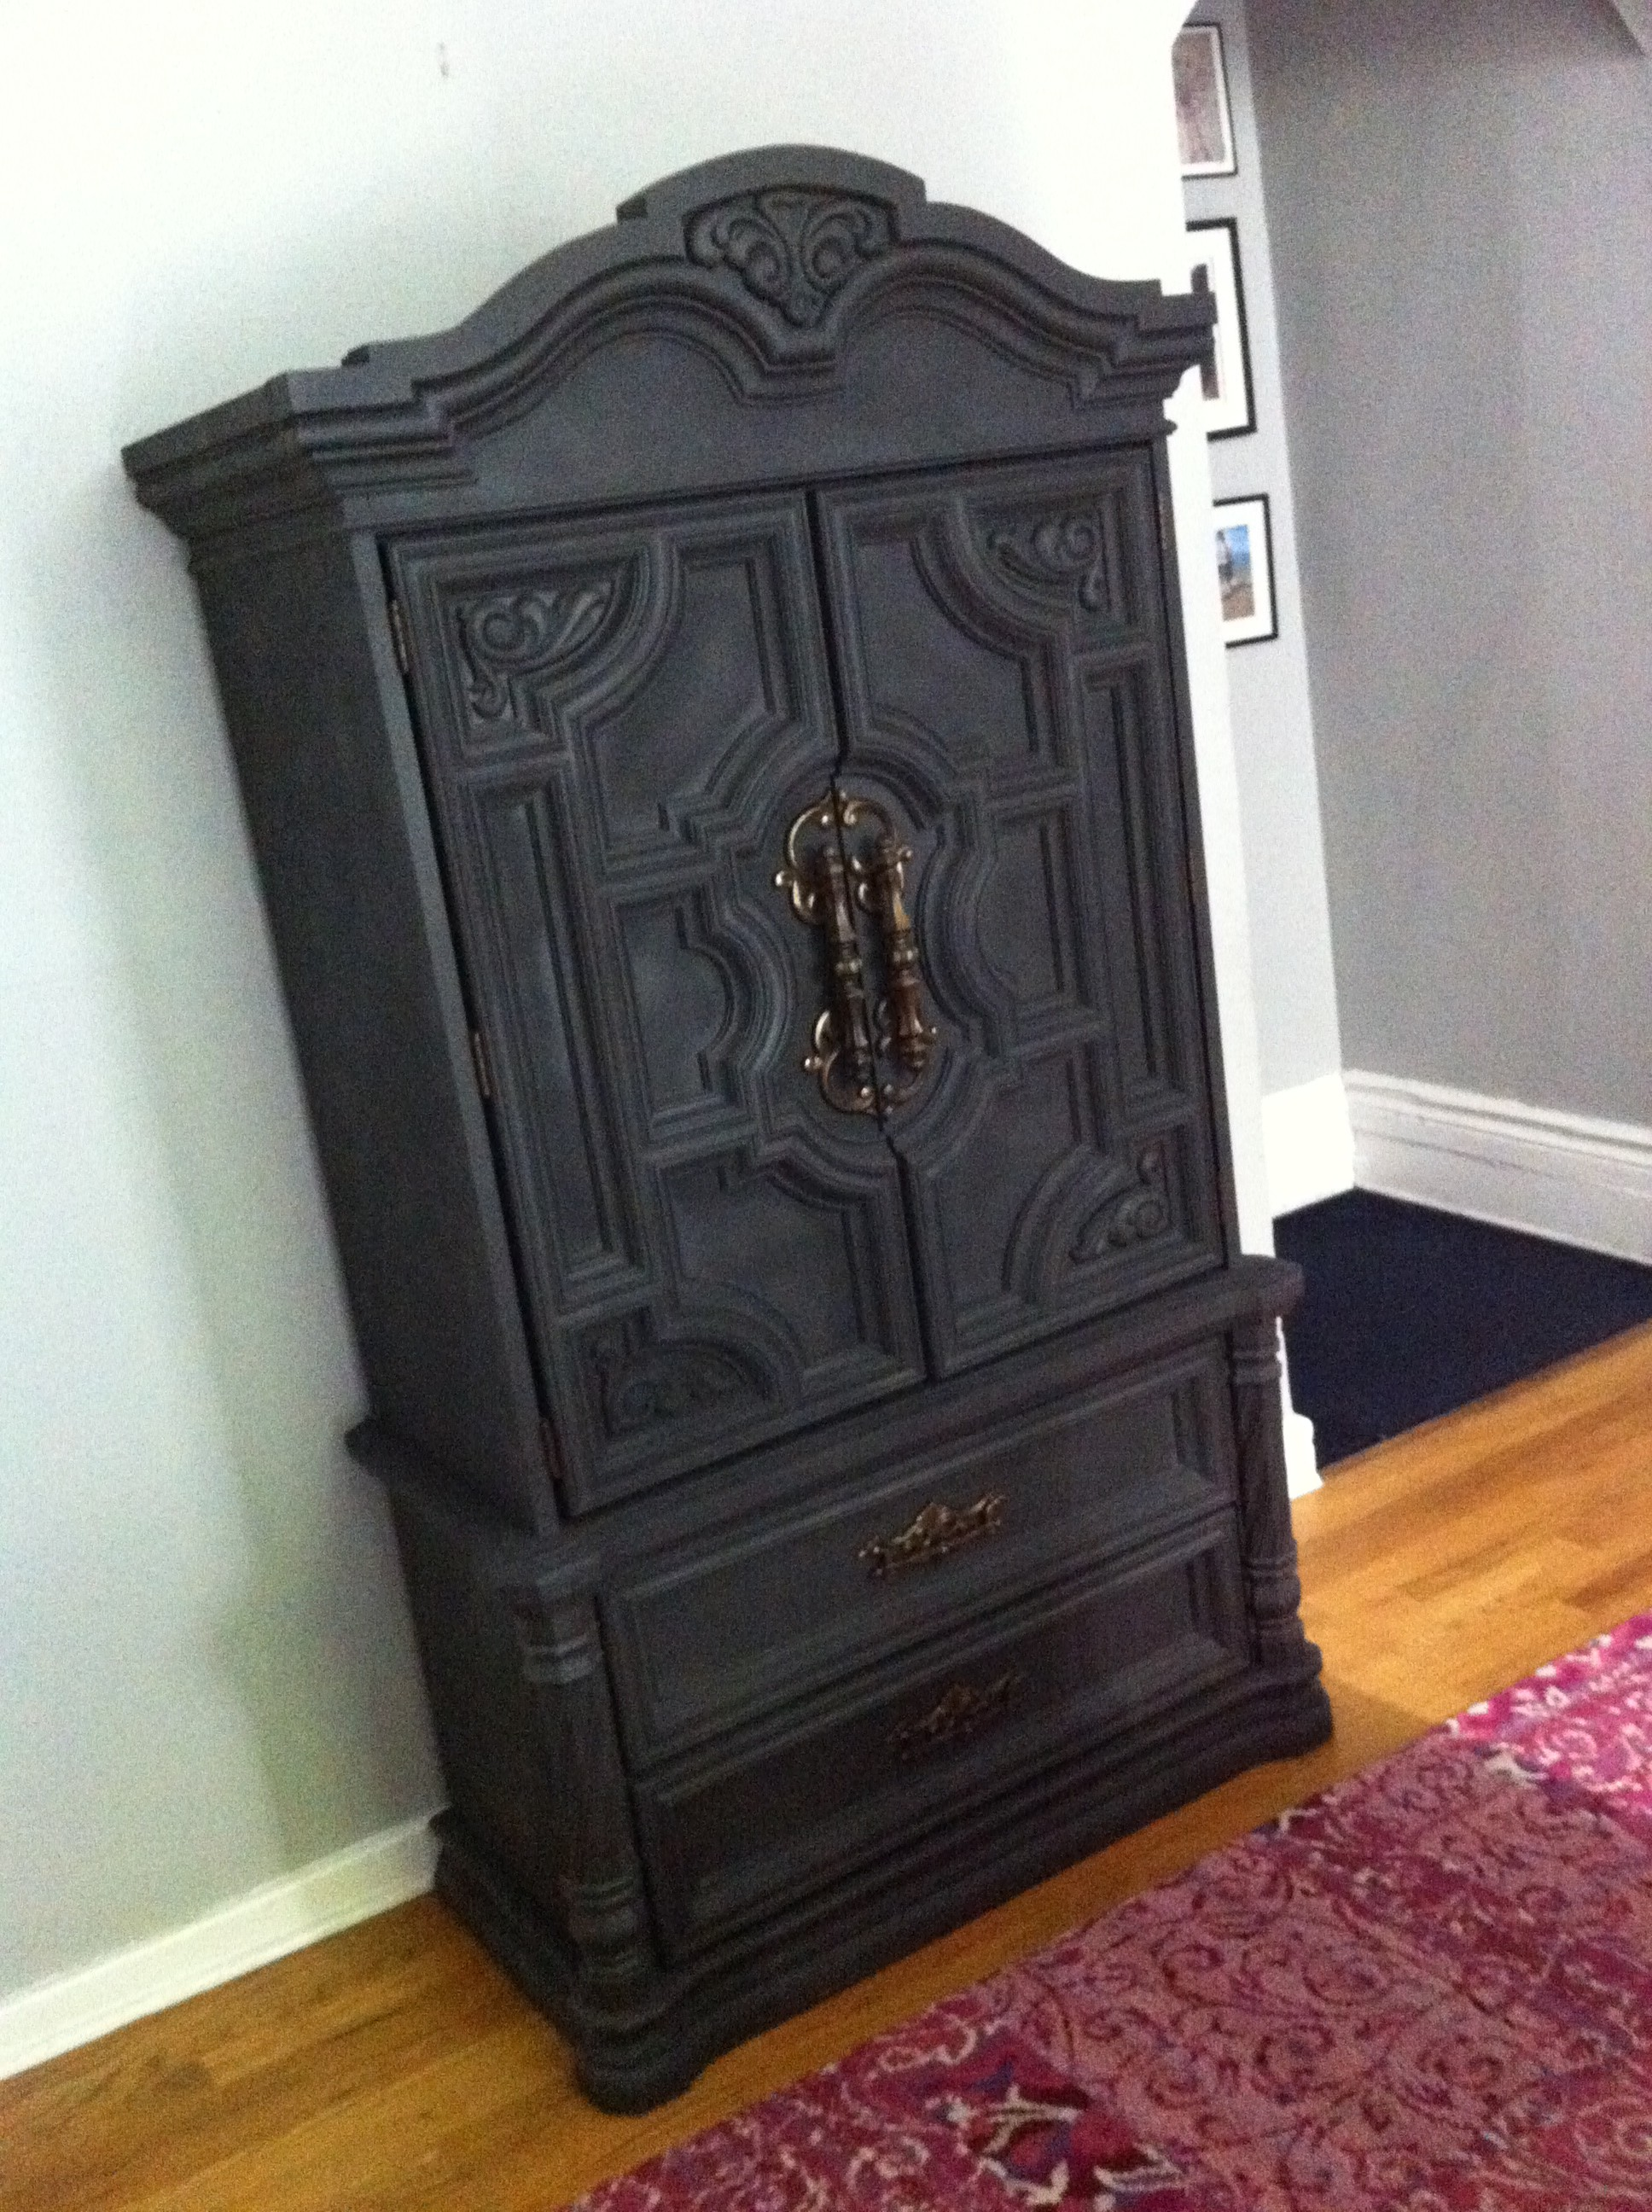 AFTER shot of the thrift store armoire